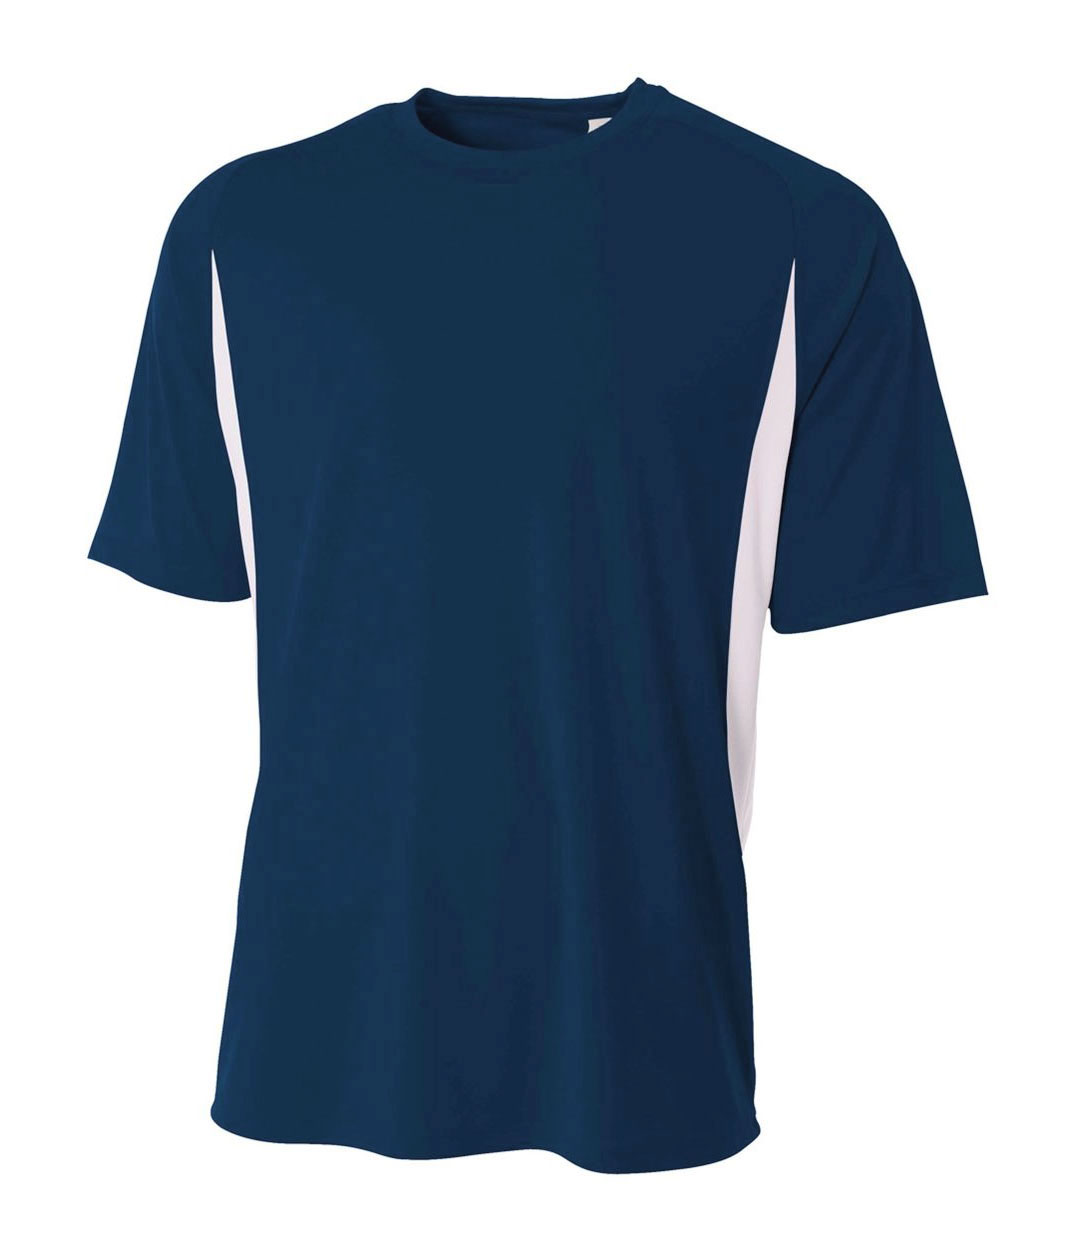 A4 Adult Cooling Performance Color Blocked Crew